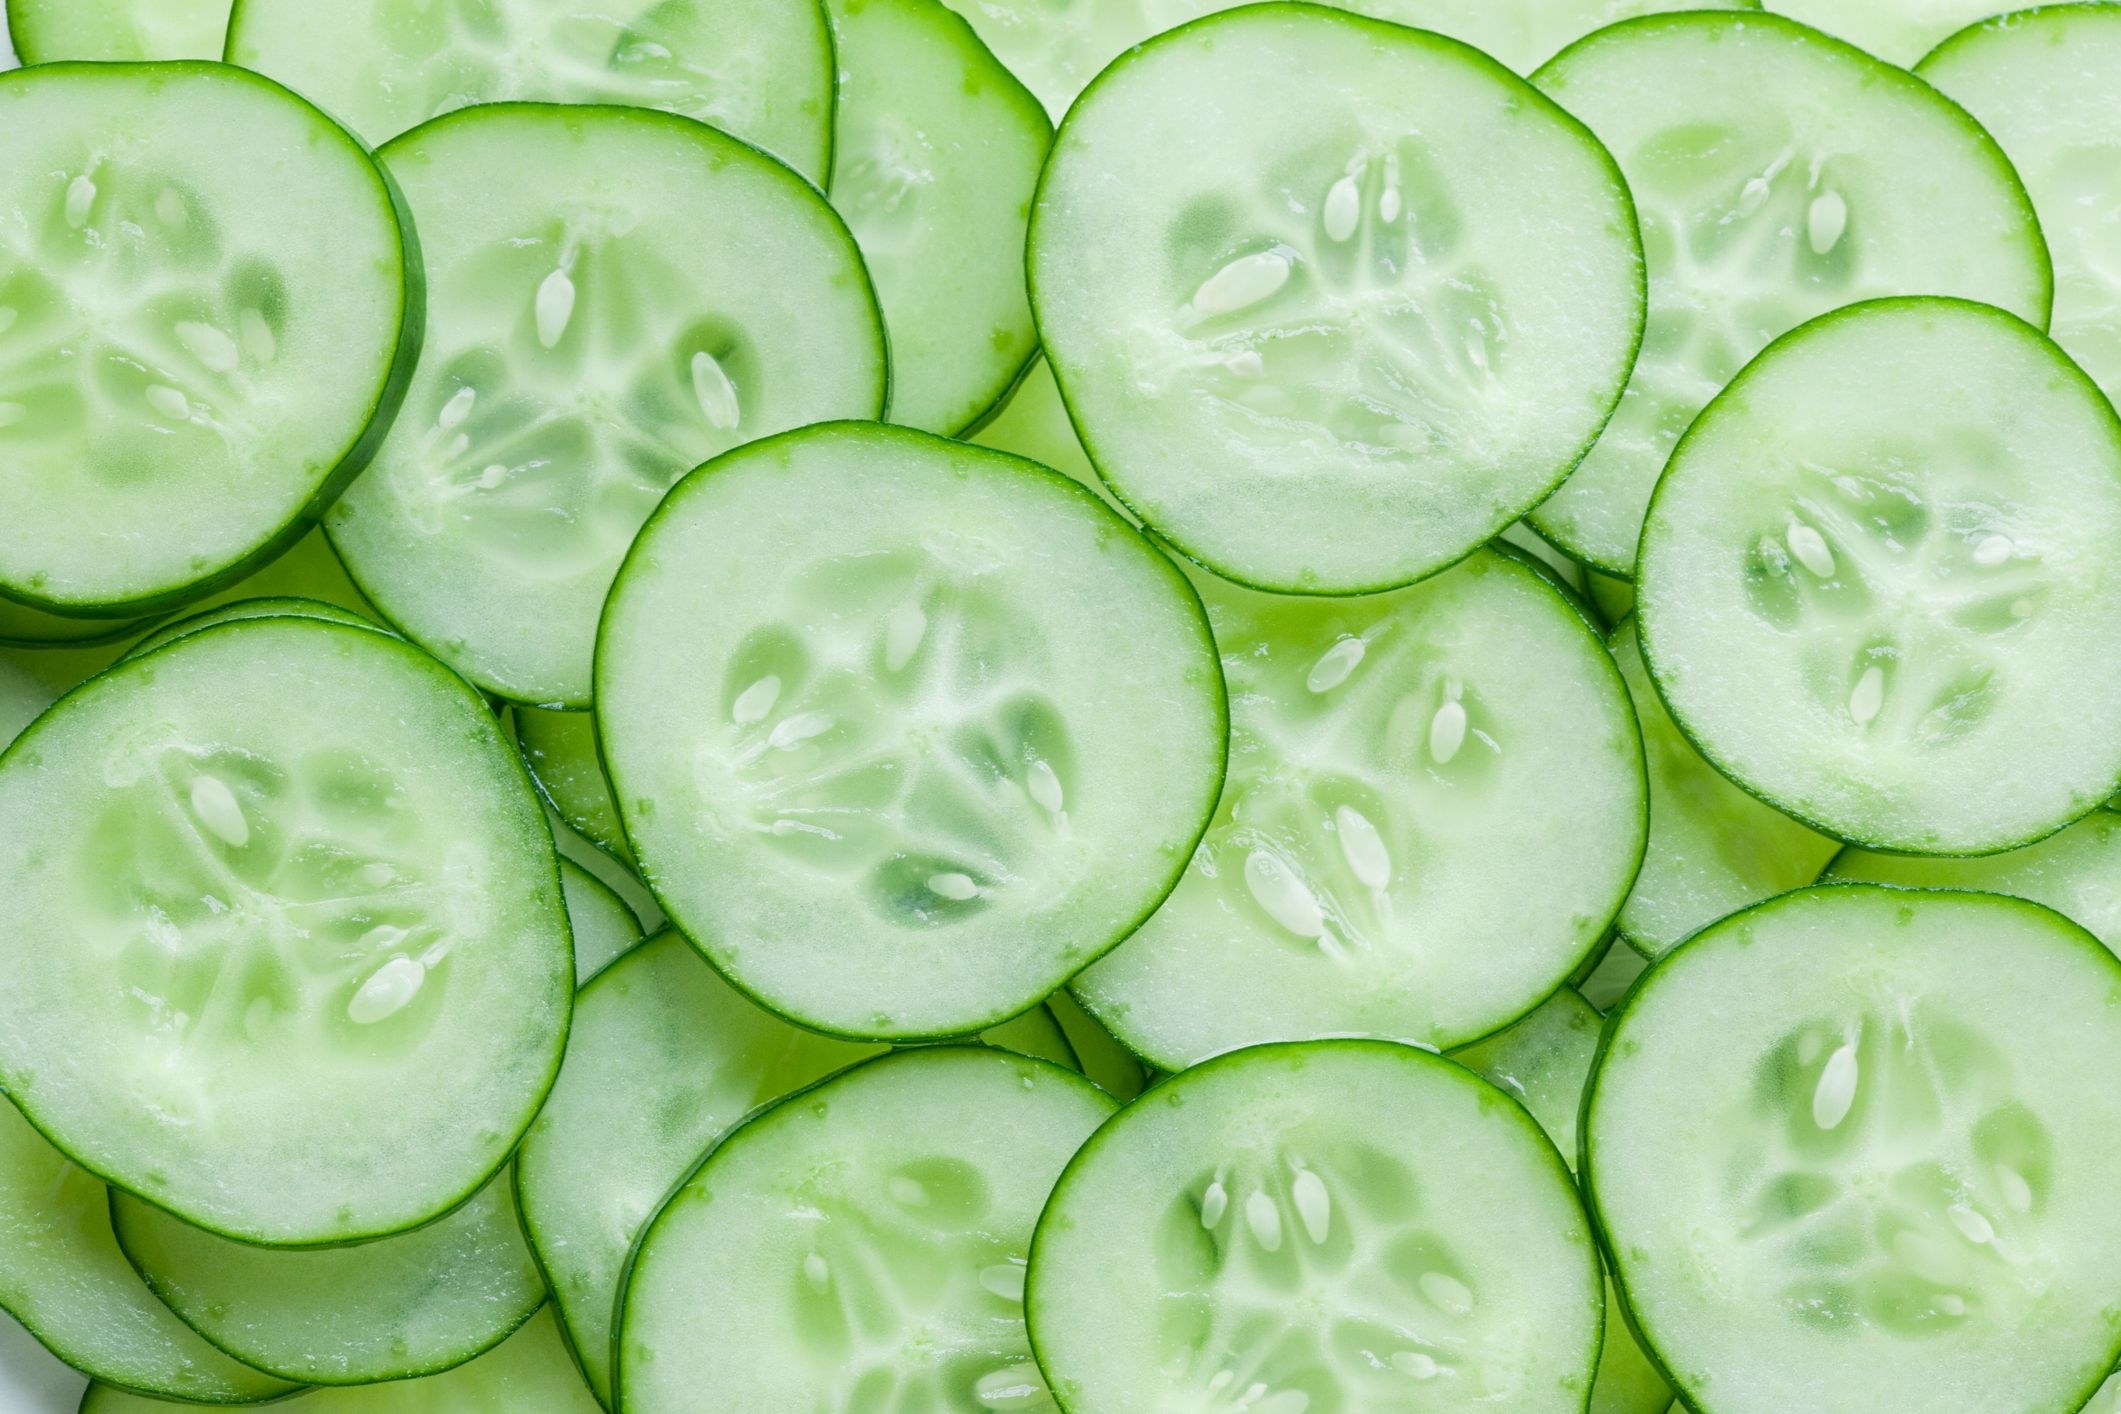 10 Cucumber Health Benefits You Shouldn't Ignore